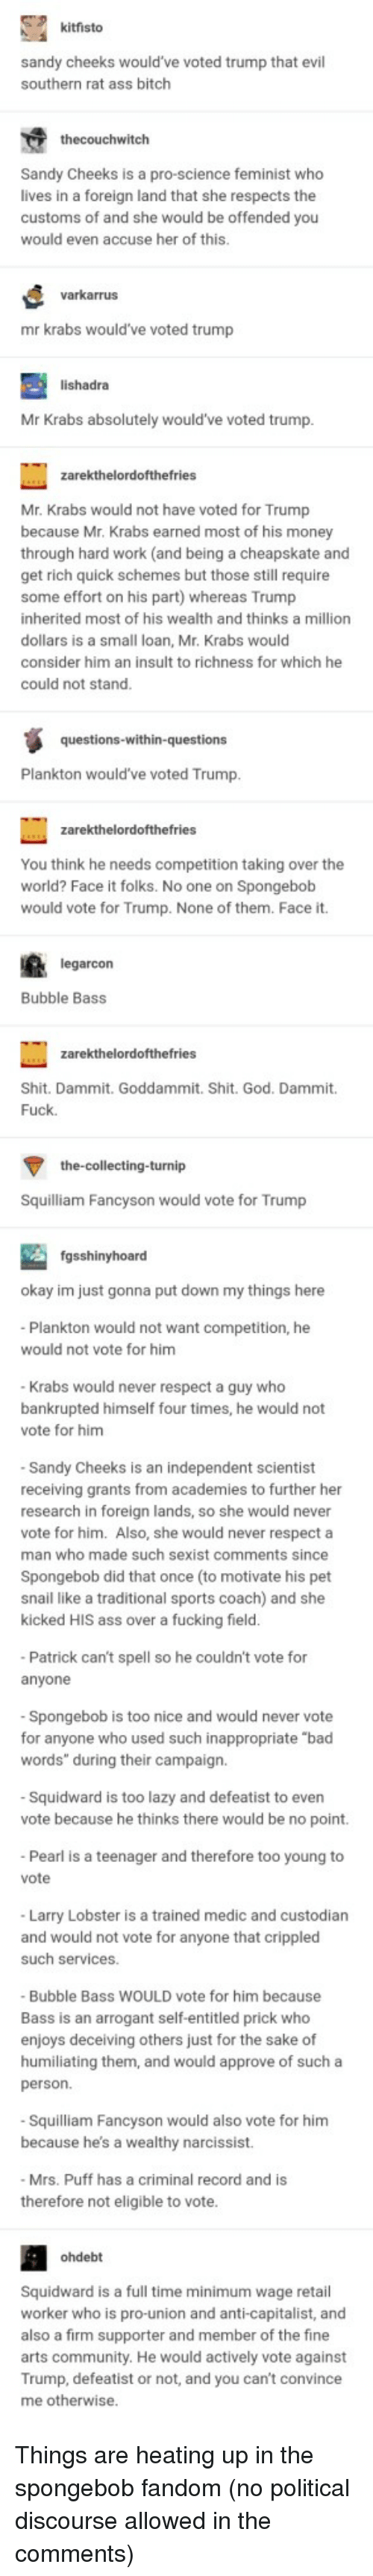 "Put Down: kitfisto  sandy cheeks would've voted trump that evil  southern rat ass bitch  thecouchwitch  Sandy Cheeks is a pro-science feminist who  lives in a foreign land that she respects the  customs of and she would be offended you  would even accuse her of this.  varkarrus  mr krabs would've voted trump  lishadra  Mr Krabs absolutely would've voted trump  Mr. Krabs would not have voted for Trump  because Mr. Krabs earned most of his money  through hard work (and being a cheapskate and  get rich quick schemes but those still require  some effort on his part) whereas Trump  inherited most of his wealth and thinks a million  dollars is a small loan, Mr. Krabs would  consider him an insult to richness for which he  could not stand  Plankton would've voted Trump  You think he needs competition taking over the  world? Face it folks. No one on Spongebob  would vote for Trump. None of them. Face it.  arcon  Bubble Bass  Shit. Dammit. Goddammit. Shit. God. Dammit.  Fuck  the-collecting-turnip  Squilliam Fancyson would vote for Trump  fgsshinyhoard  okay im just gonna put down my things here  Plankton would not want competition, he  would not vote for him  Krabs would never respect a guy who  bankrupted himself four times, he would not  vote for him  Sandy Cheeks is an independent scientist  receiving grants from academies to further her  research in foreign lands, so she would never  vote for him. Also, she would never respect a  man who made such sexist comments since  Spongebob did that once (to motivate his pet  snail like a traditional sports coach) and she  kicked HIS ass over a fucking field  Patrick can't spell so he couldn't vote for  anyone  Spongebob is too nice and would never vote  for anyone who used such inappropriate ""bad  words"" during their campaign.  Squidward is too lazy and defeatist to even  vote because he thinks there would be no point.  Pearl is a teenager and therefore too young to  vote  Larry Lobster is a trained medic and custodian  and would not vote for anyone that crippled  such services  Bubble Bass WOULD vote for him because  Bass is an arrogant self-entitled prick who  enjoys deceiving others just for the sake of  humiliating them, and would approve of such a  person.  Squilliam Fancyson would also vote for him  because he's a wealthy narcissist.  Mrs. Puff has a criminal record and is  therefore not eligible to vote  ohdebt  Squidward is a full time minimum wage retail  worker who is pro-union and anti-capitalist, and  also a firm supporter and member of the fine  arts community. He would actively vote against  Trump, defeatist or not, and you can't convince  me otherwise Things are heating up in the spongebob fandom (no political discourse allowed in the comments)"